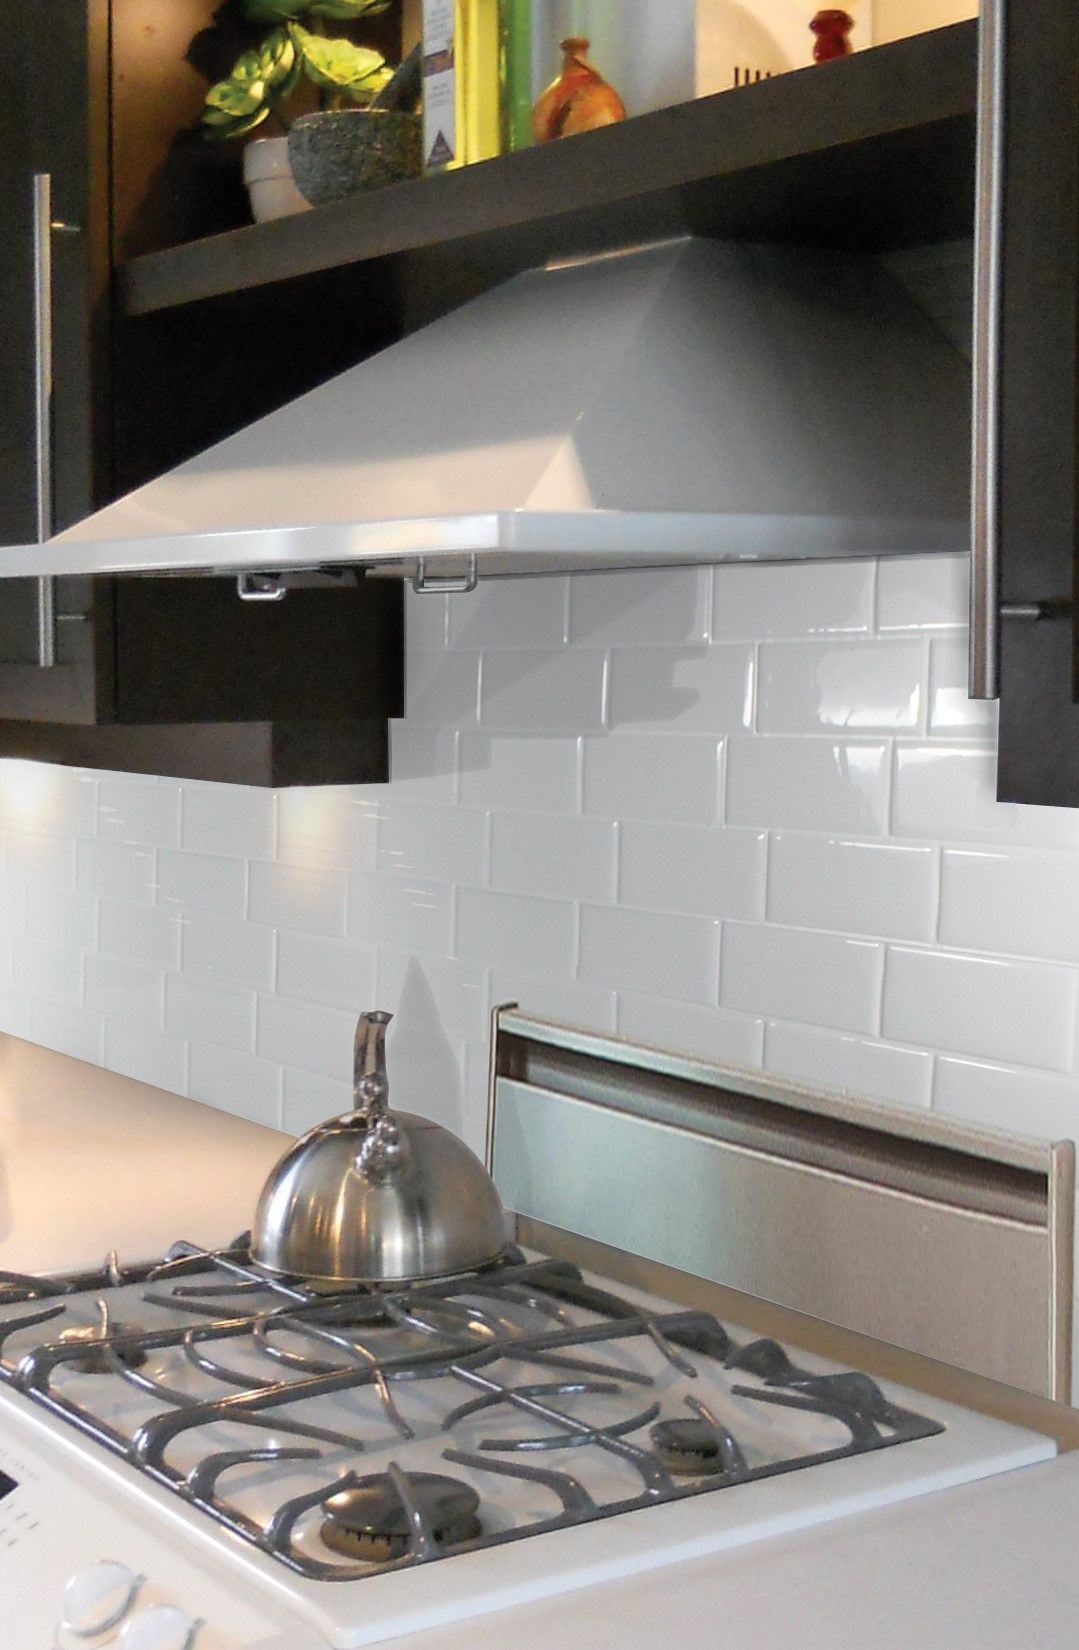 Metro blanco peel and stick smart tiles especially designed for find this pin and more on backsplash diy at home smart tiles by thesmarttiles dailygadgetfo Choice Image